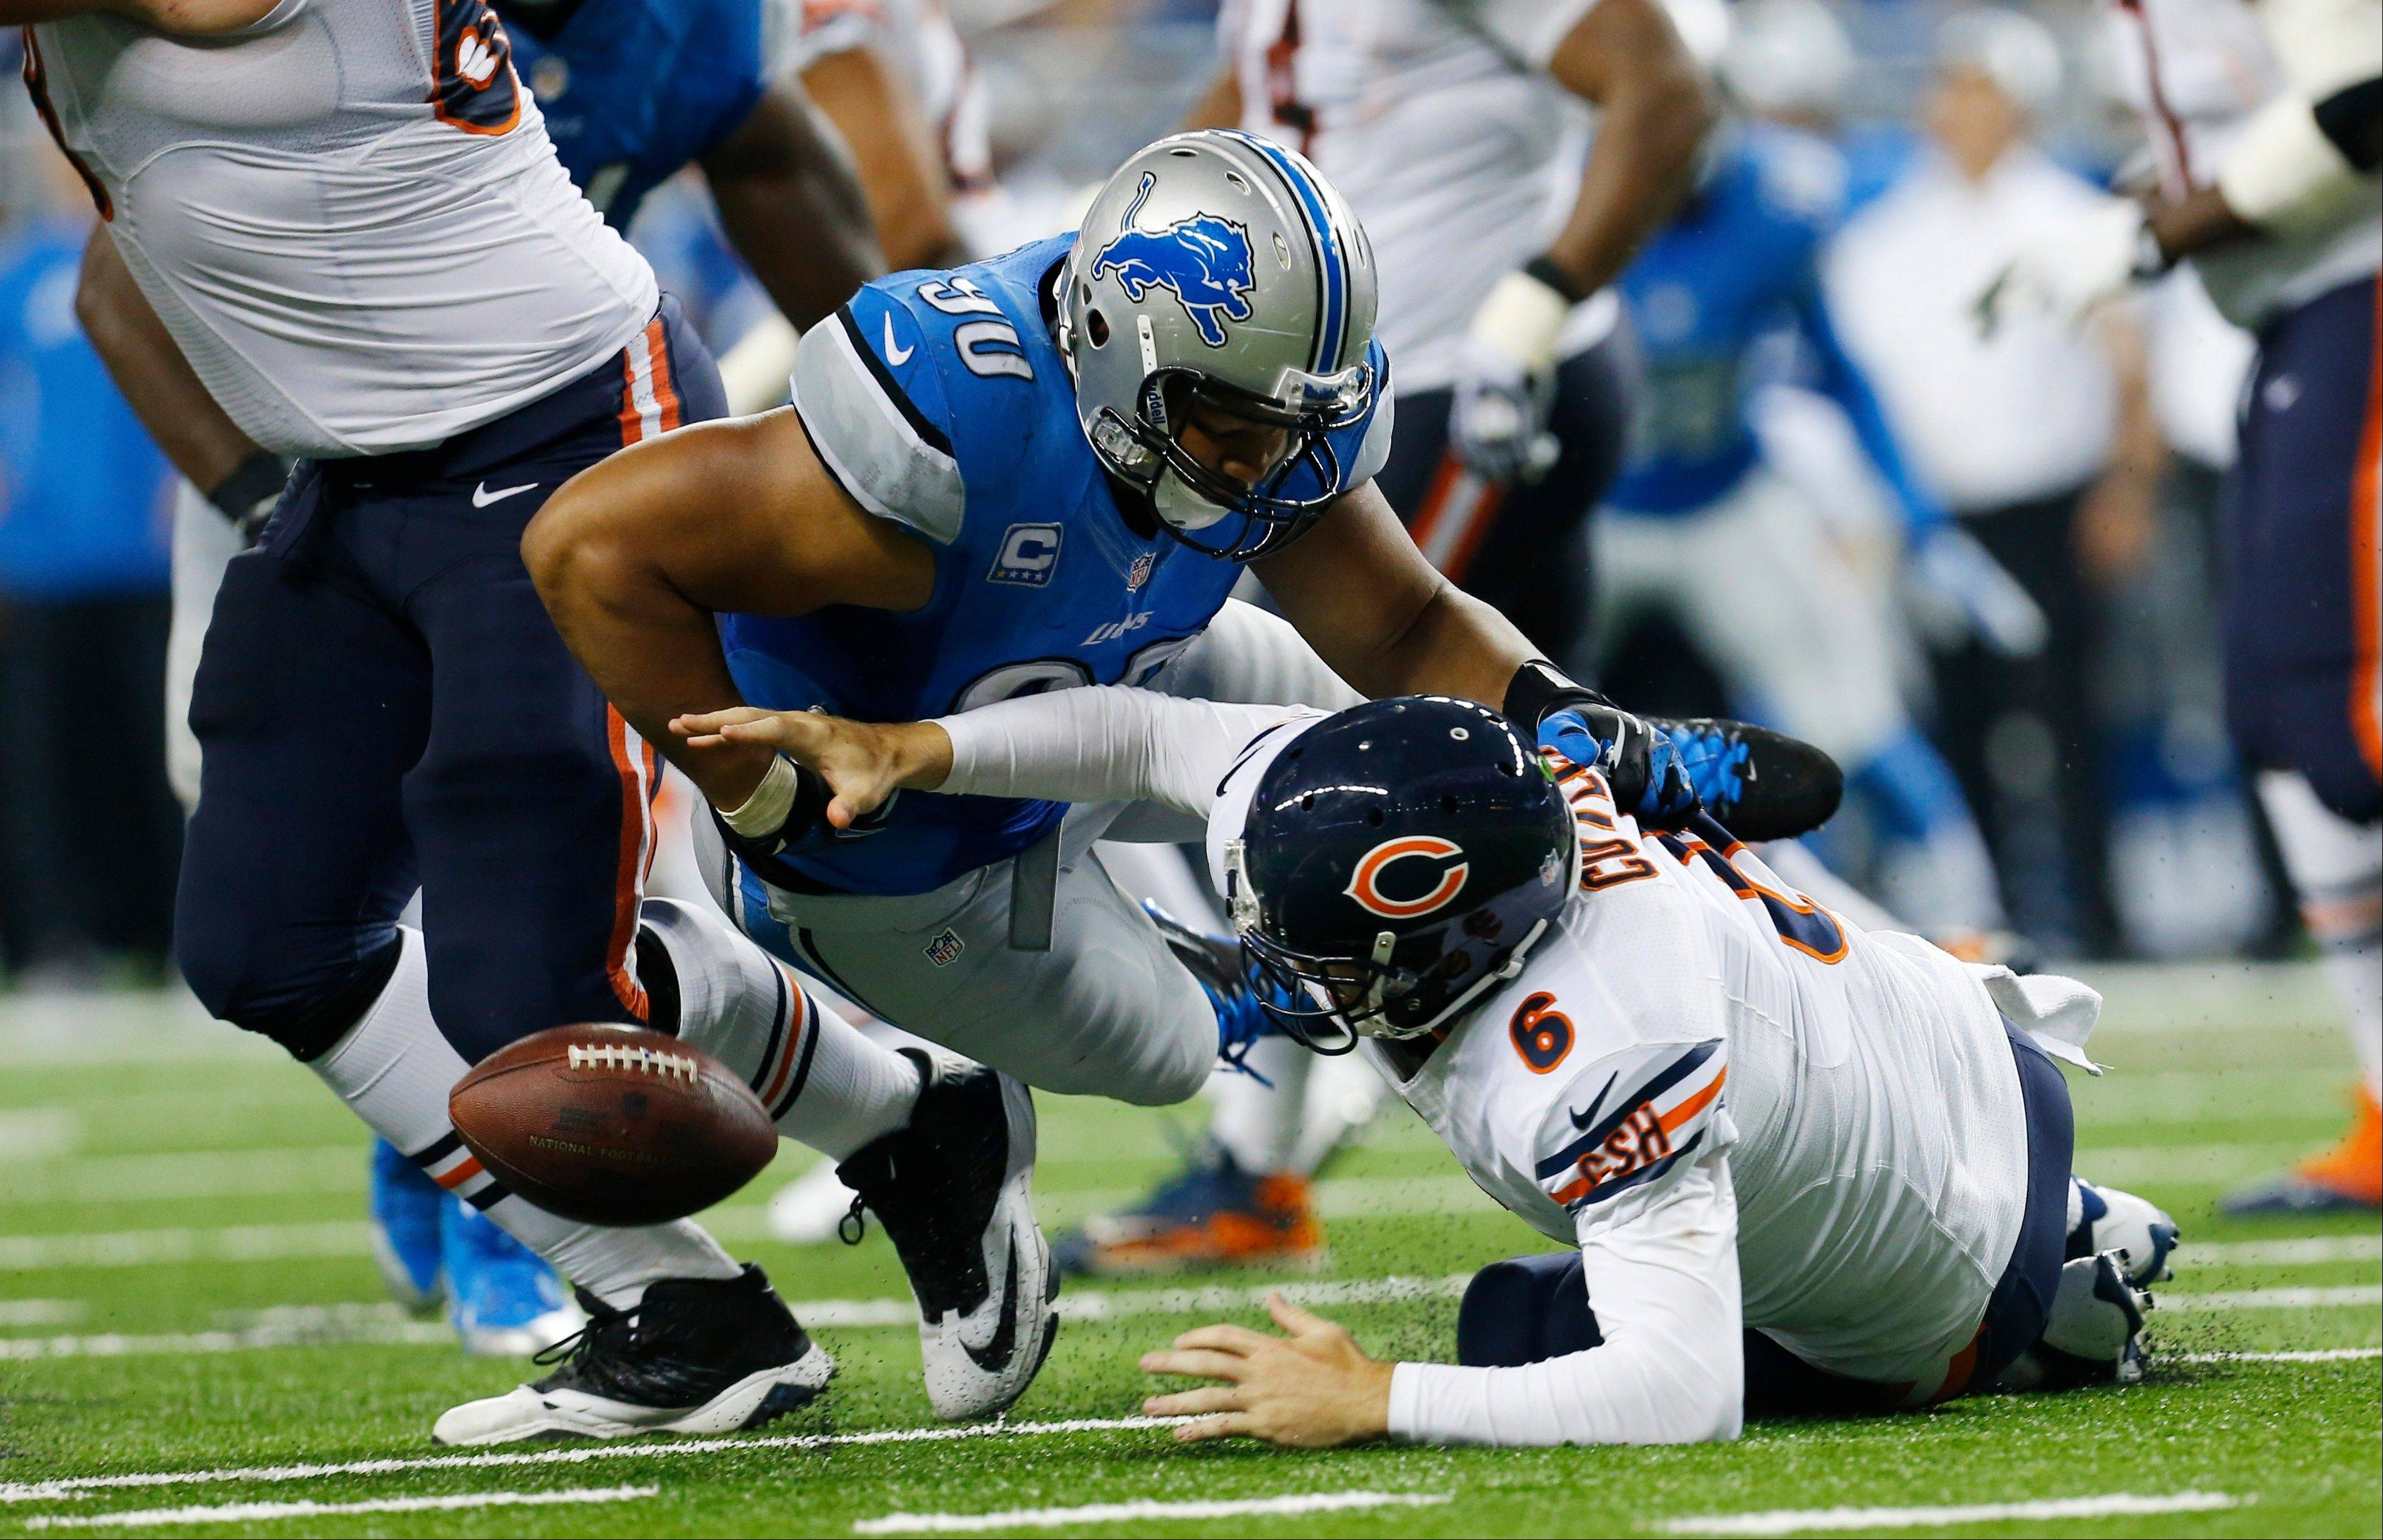 Chicago Bears quarterback Jay Cutler (6) fumbles the ball after a hit from Detroit Lions defensive tackle Ndamukong Suh (90) during the third quarter of an NFL football game against at Ford Field in Detroit, Sunday, Sept. 29, 2013. The fumble was recovered by Detroit Lions defensive tackle Nick Fairley for a 4-yard touchdown.